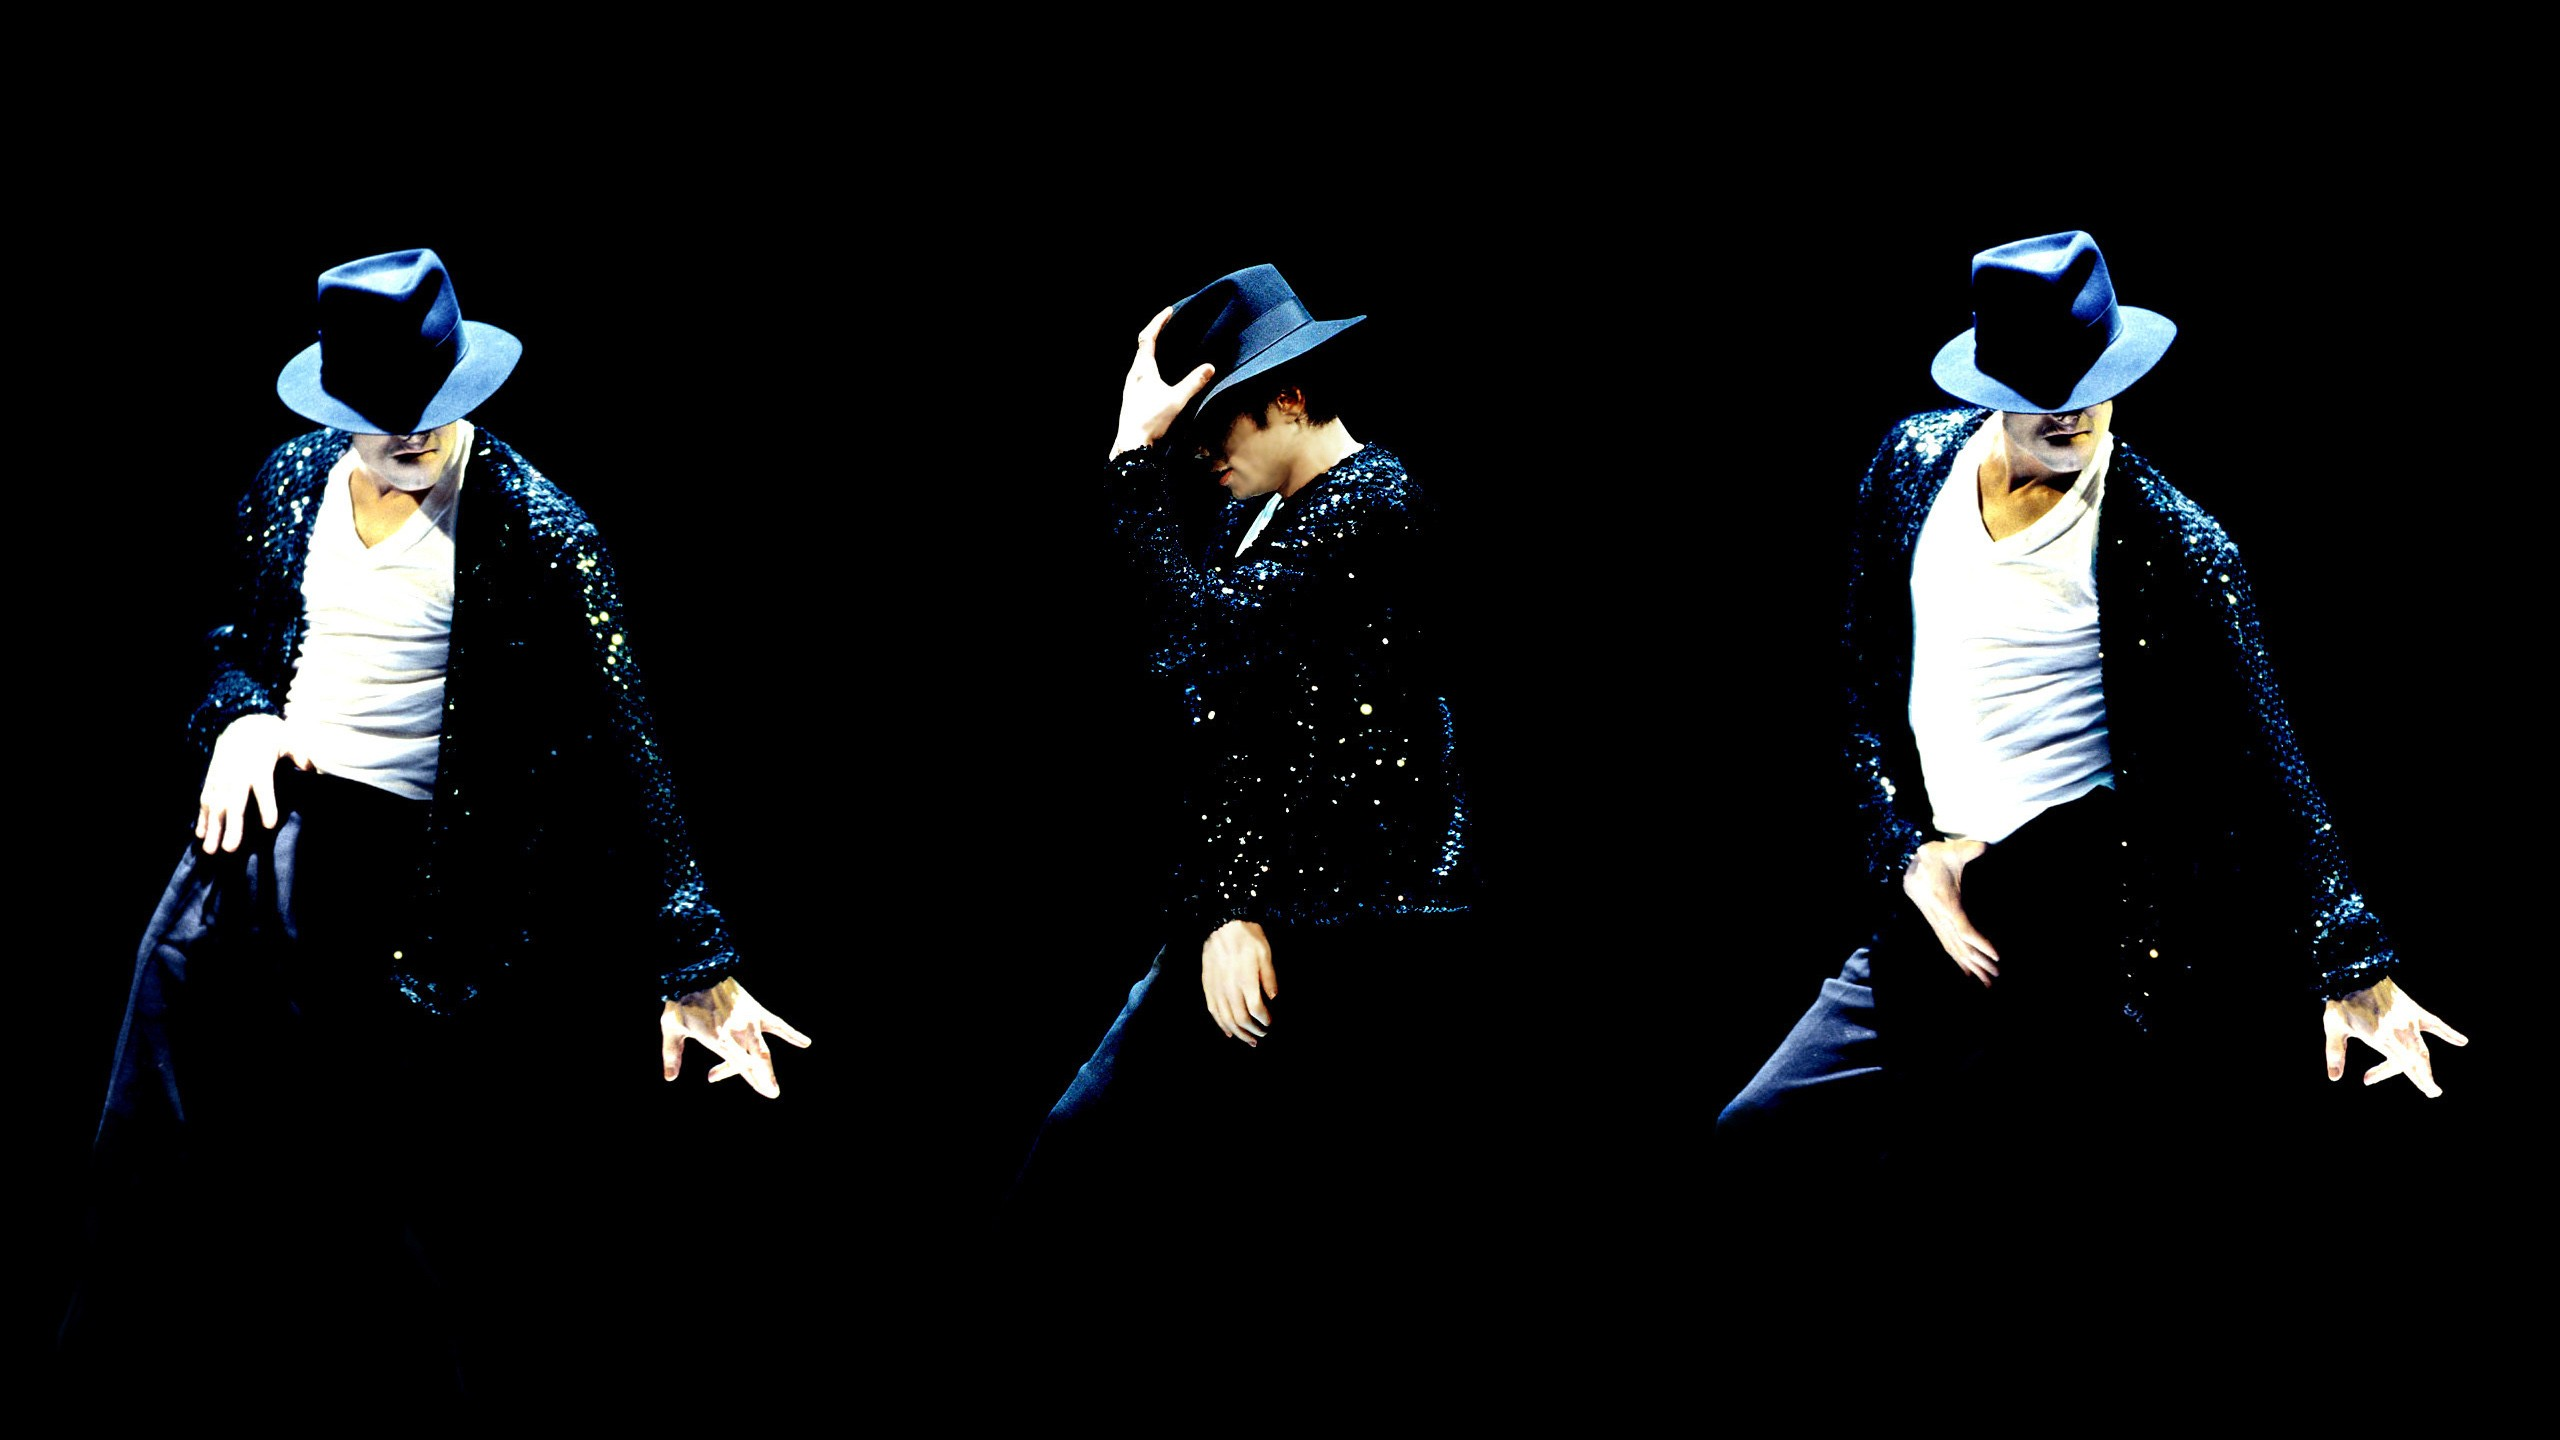 Michael Jackson Doing Dance 2048x1152 Resolution